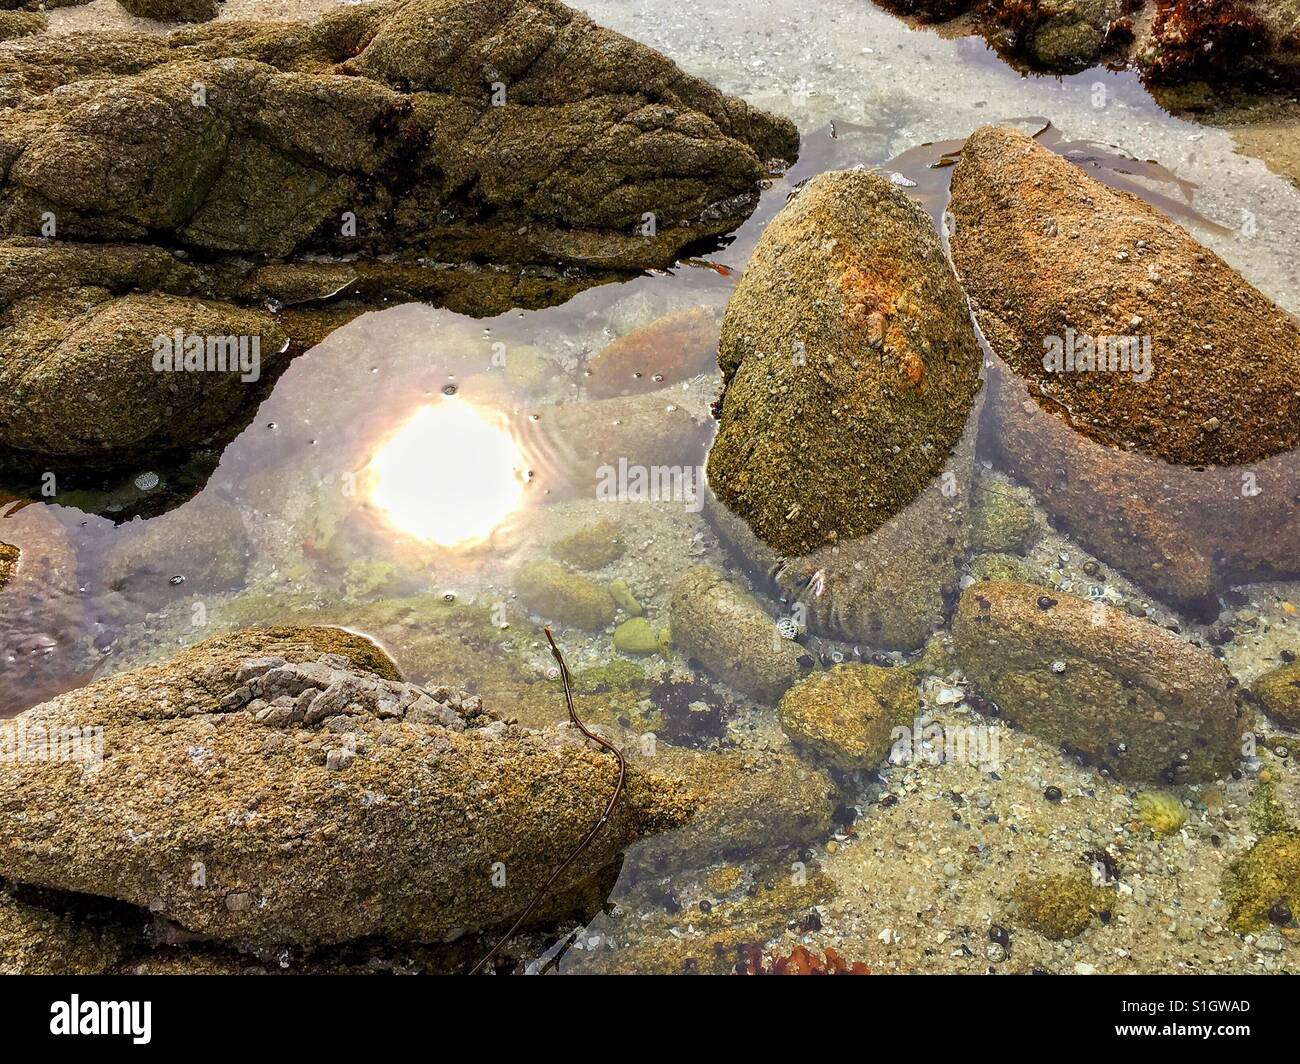 The reflection of the sun on the surface of sea water. - Stock Image